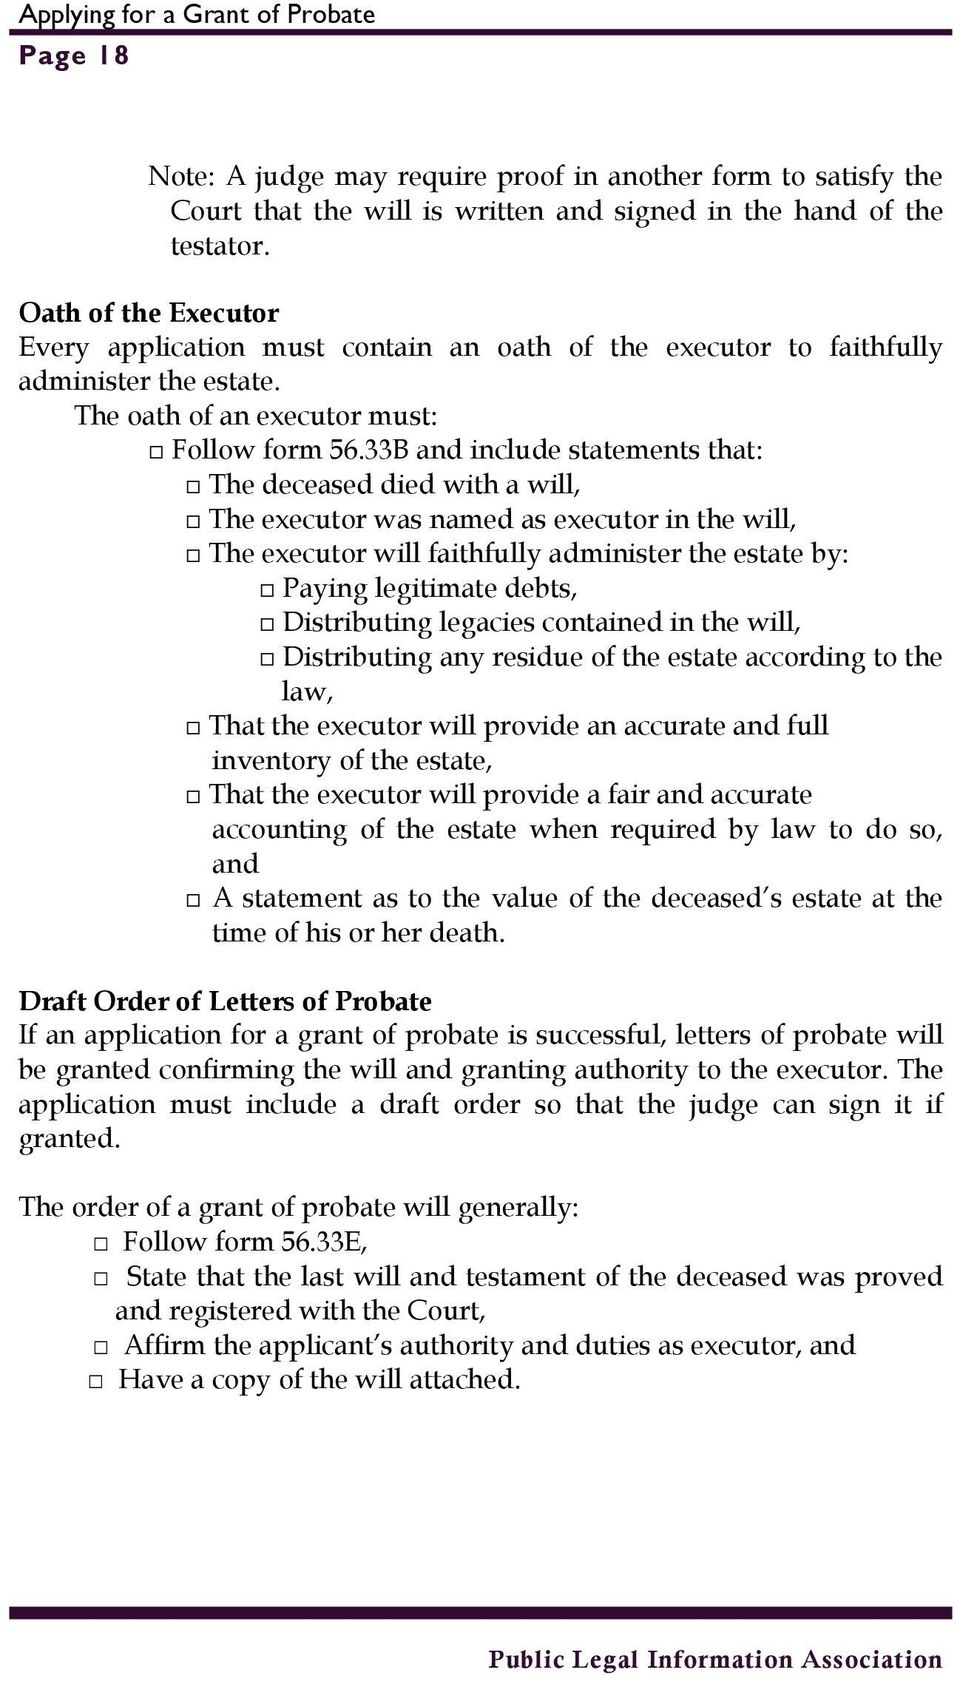 33B and include statements that: The deceased died with a will, The executor was named as executor in the will, The executor will faithfully administer the estate by: Paying legitimate debts,